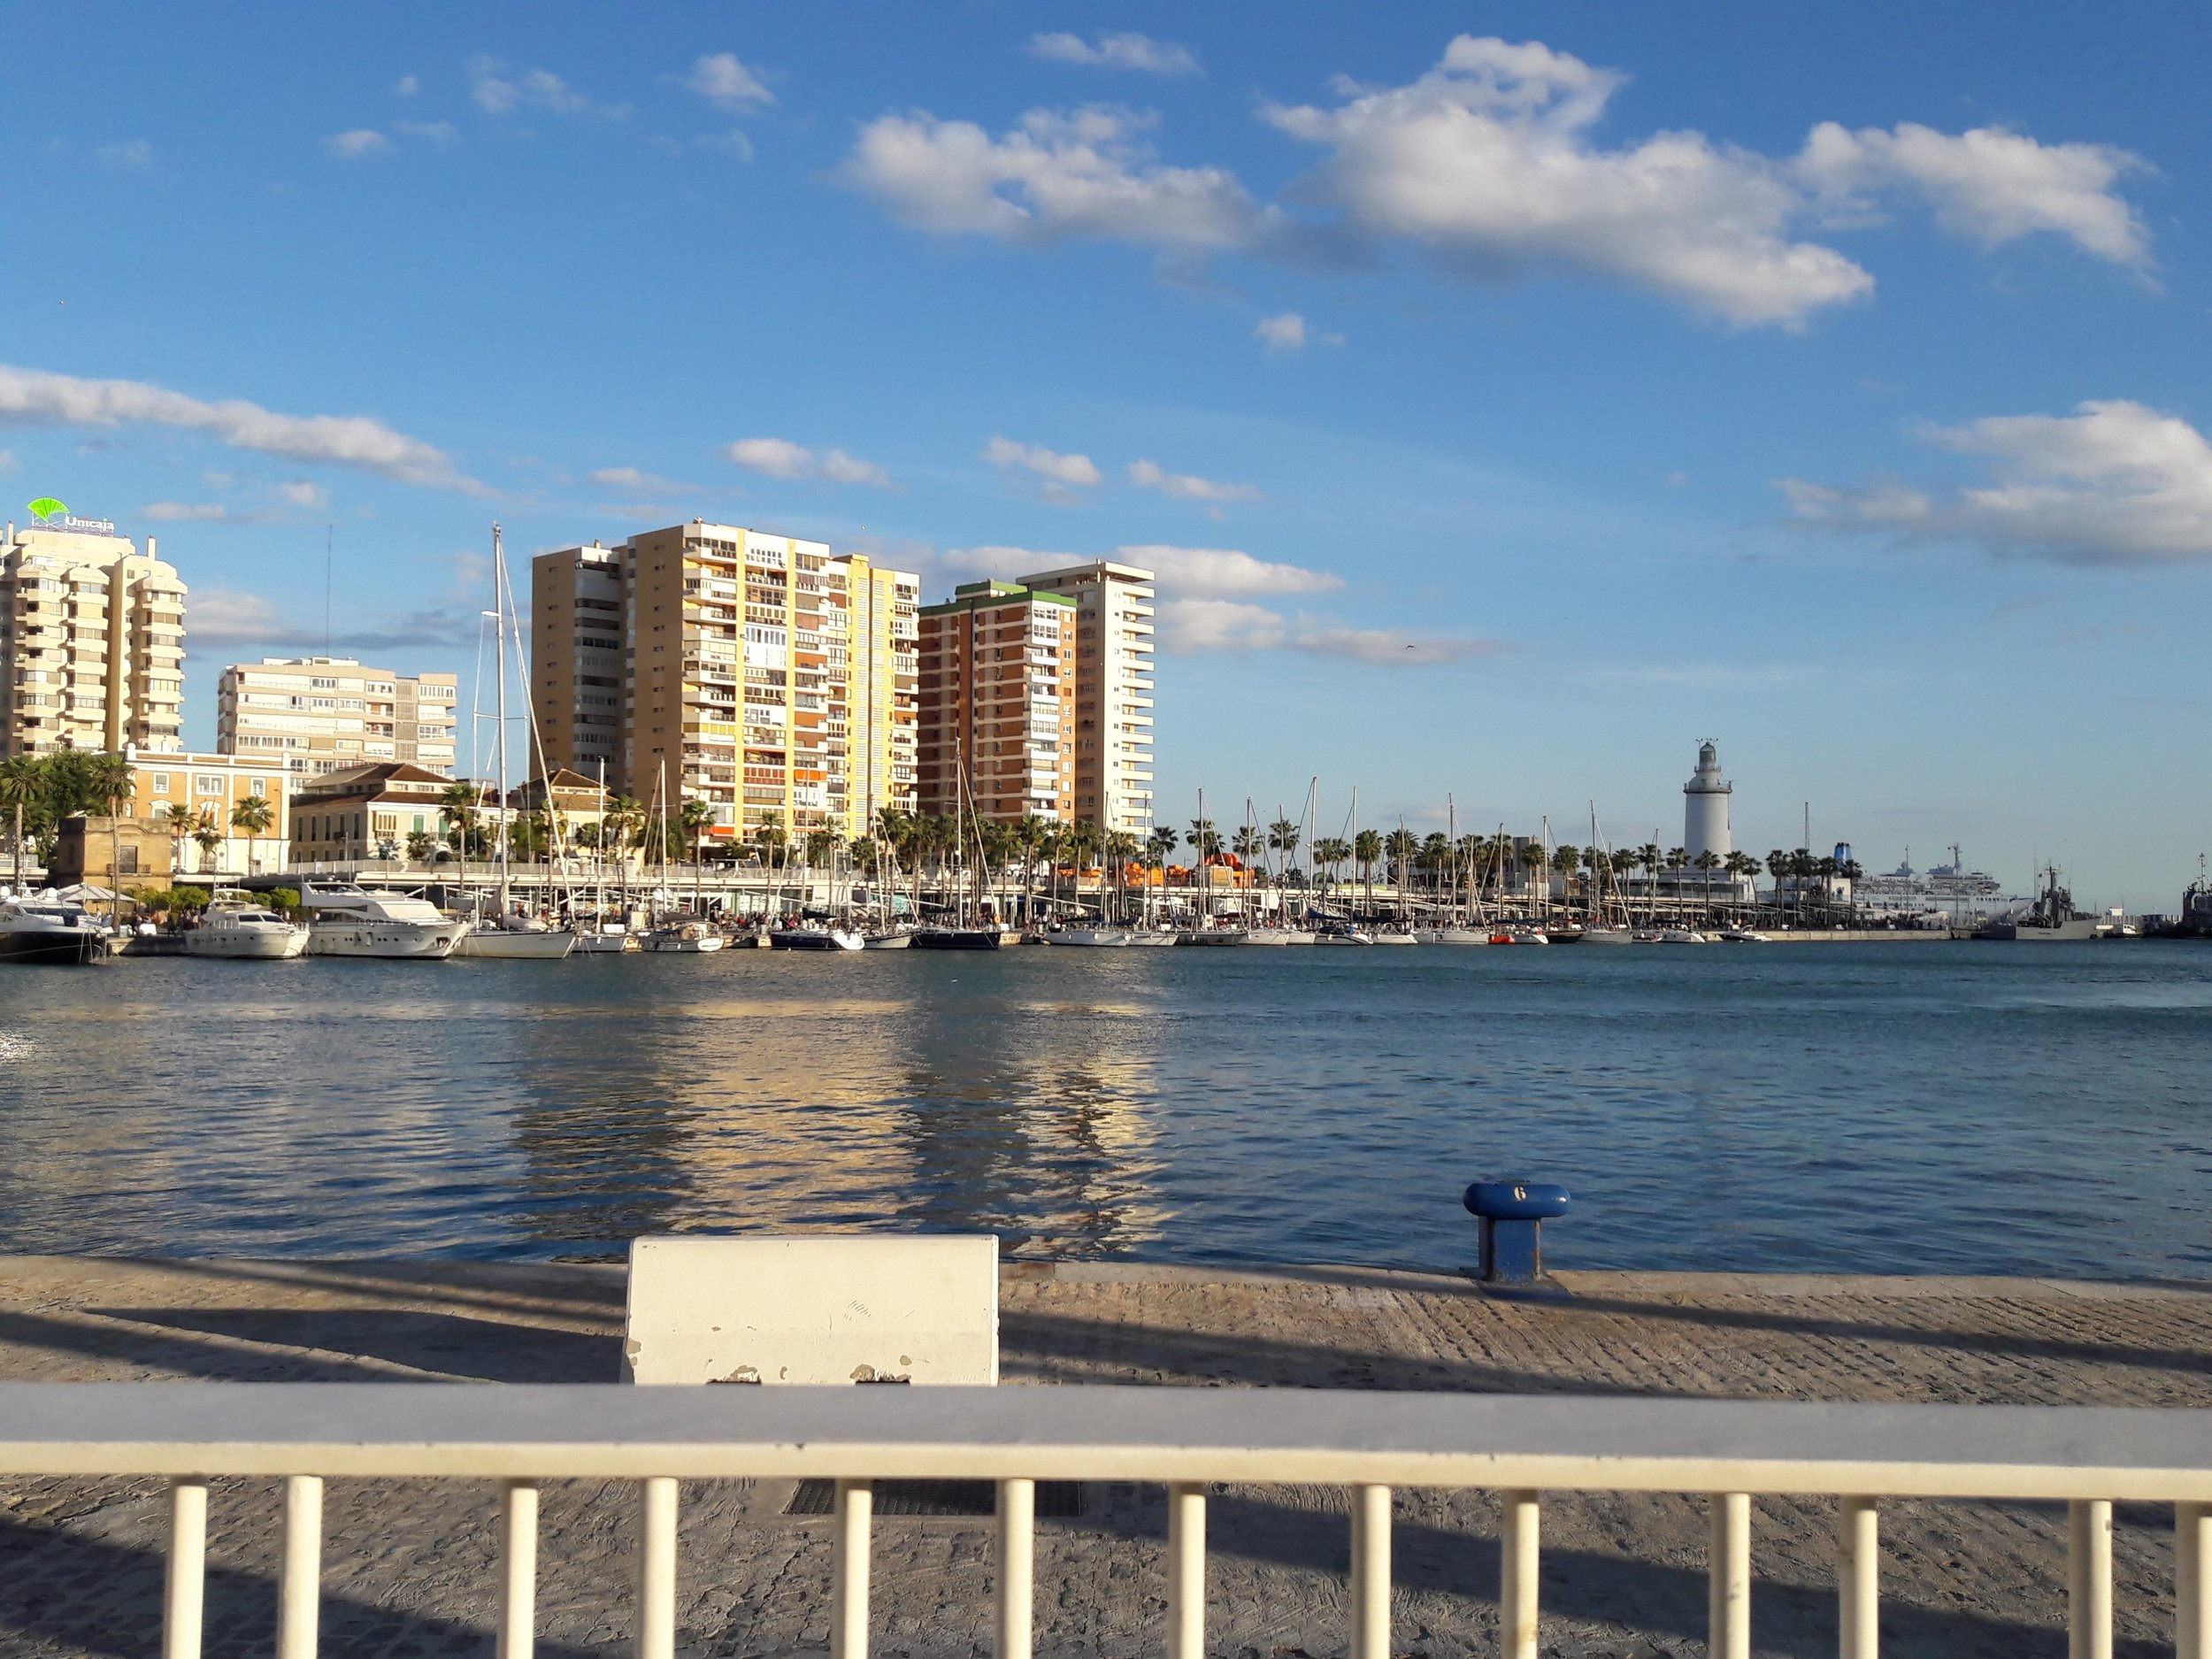 The port of Malaga and Muelle Uno